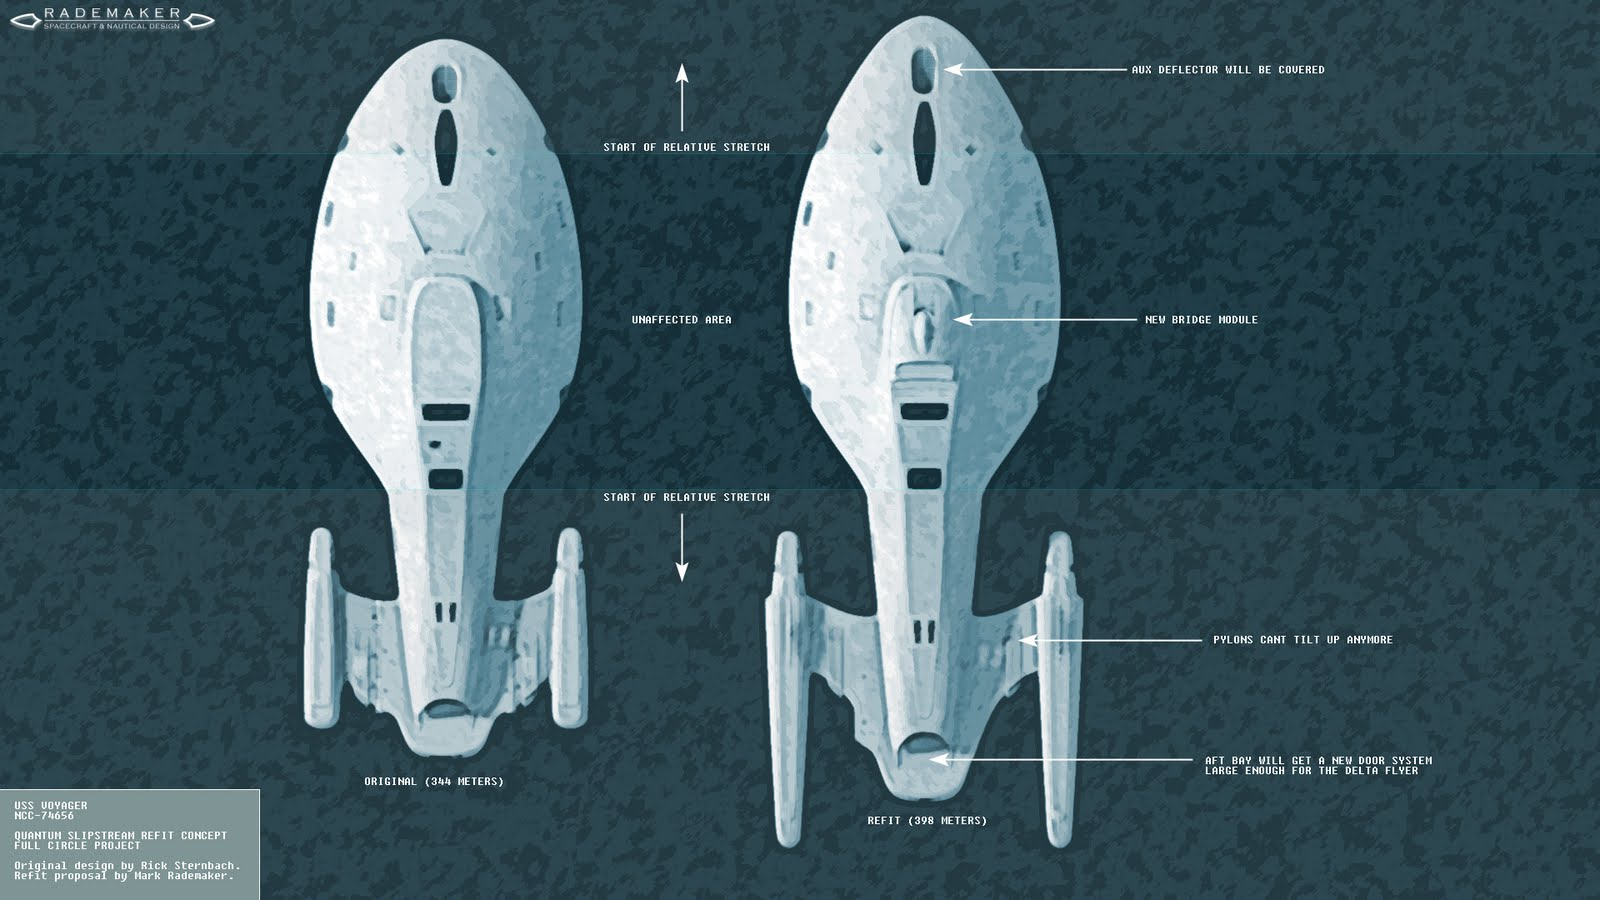 The Trek Collective: Mark Rademaker's Project Full Circle